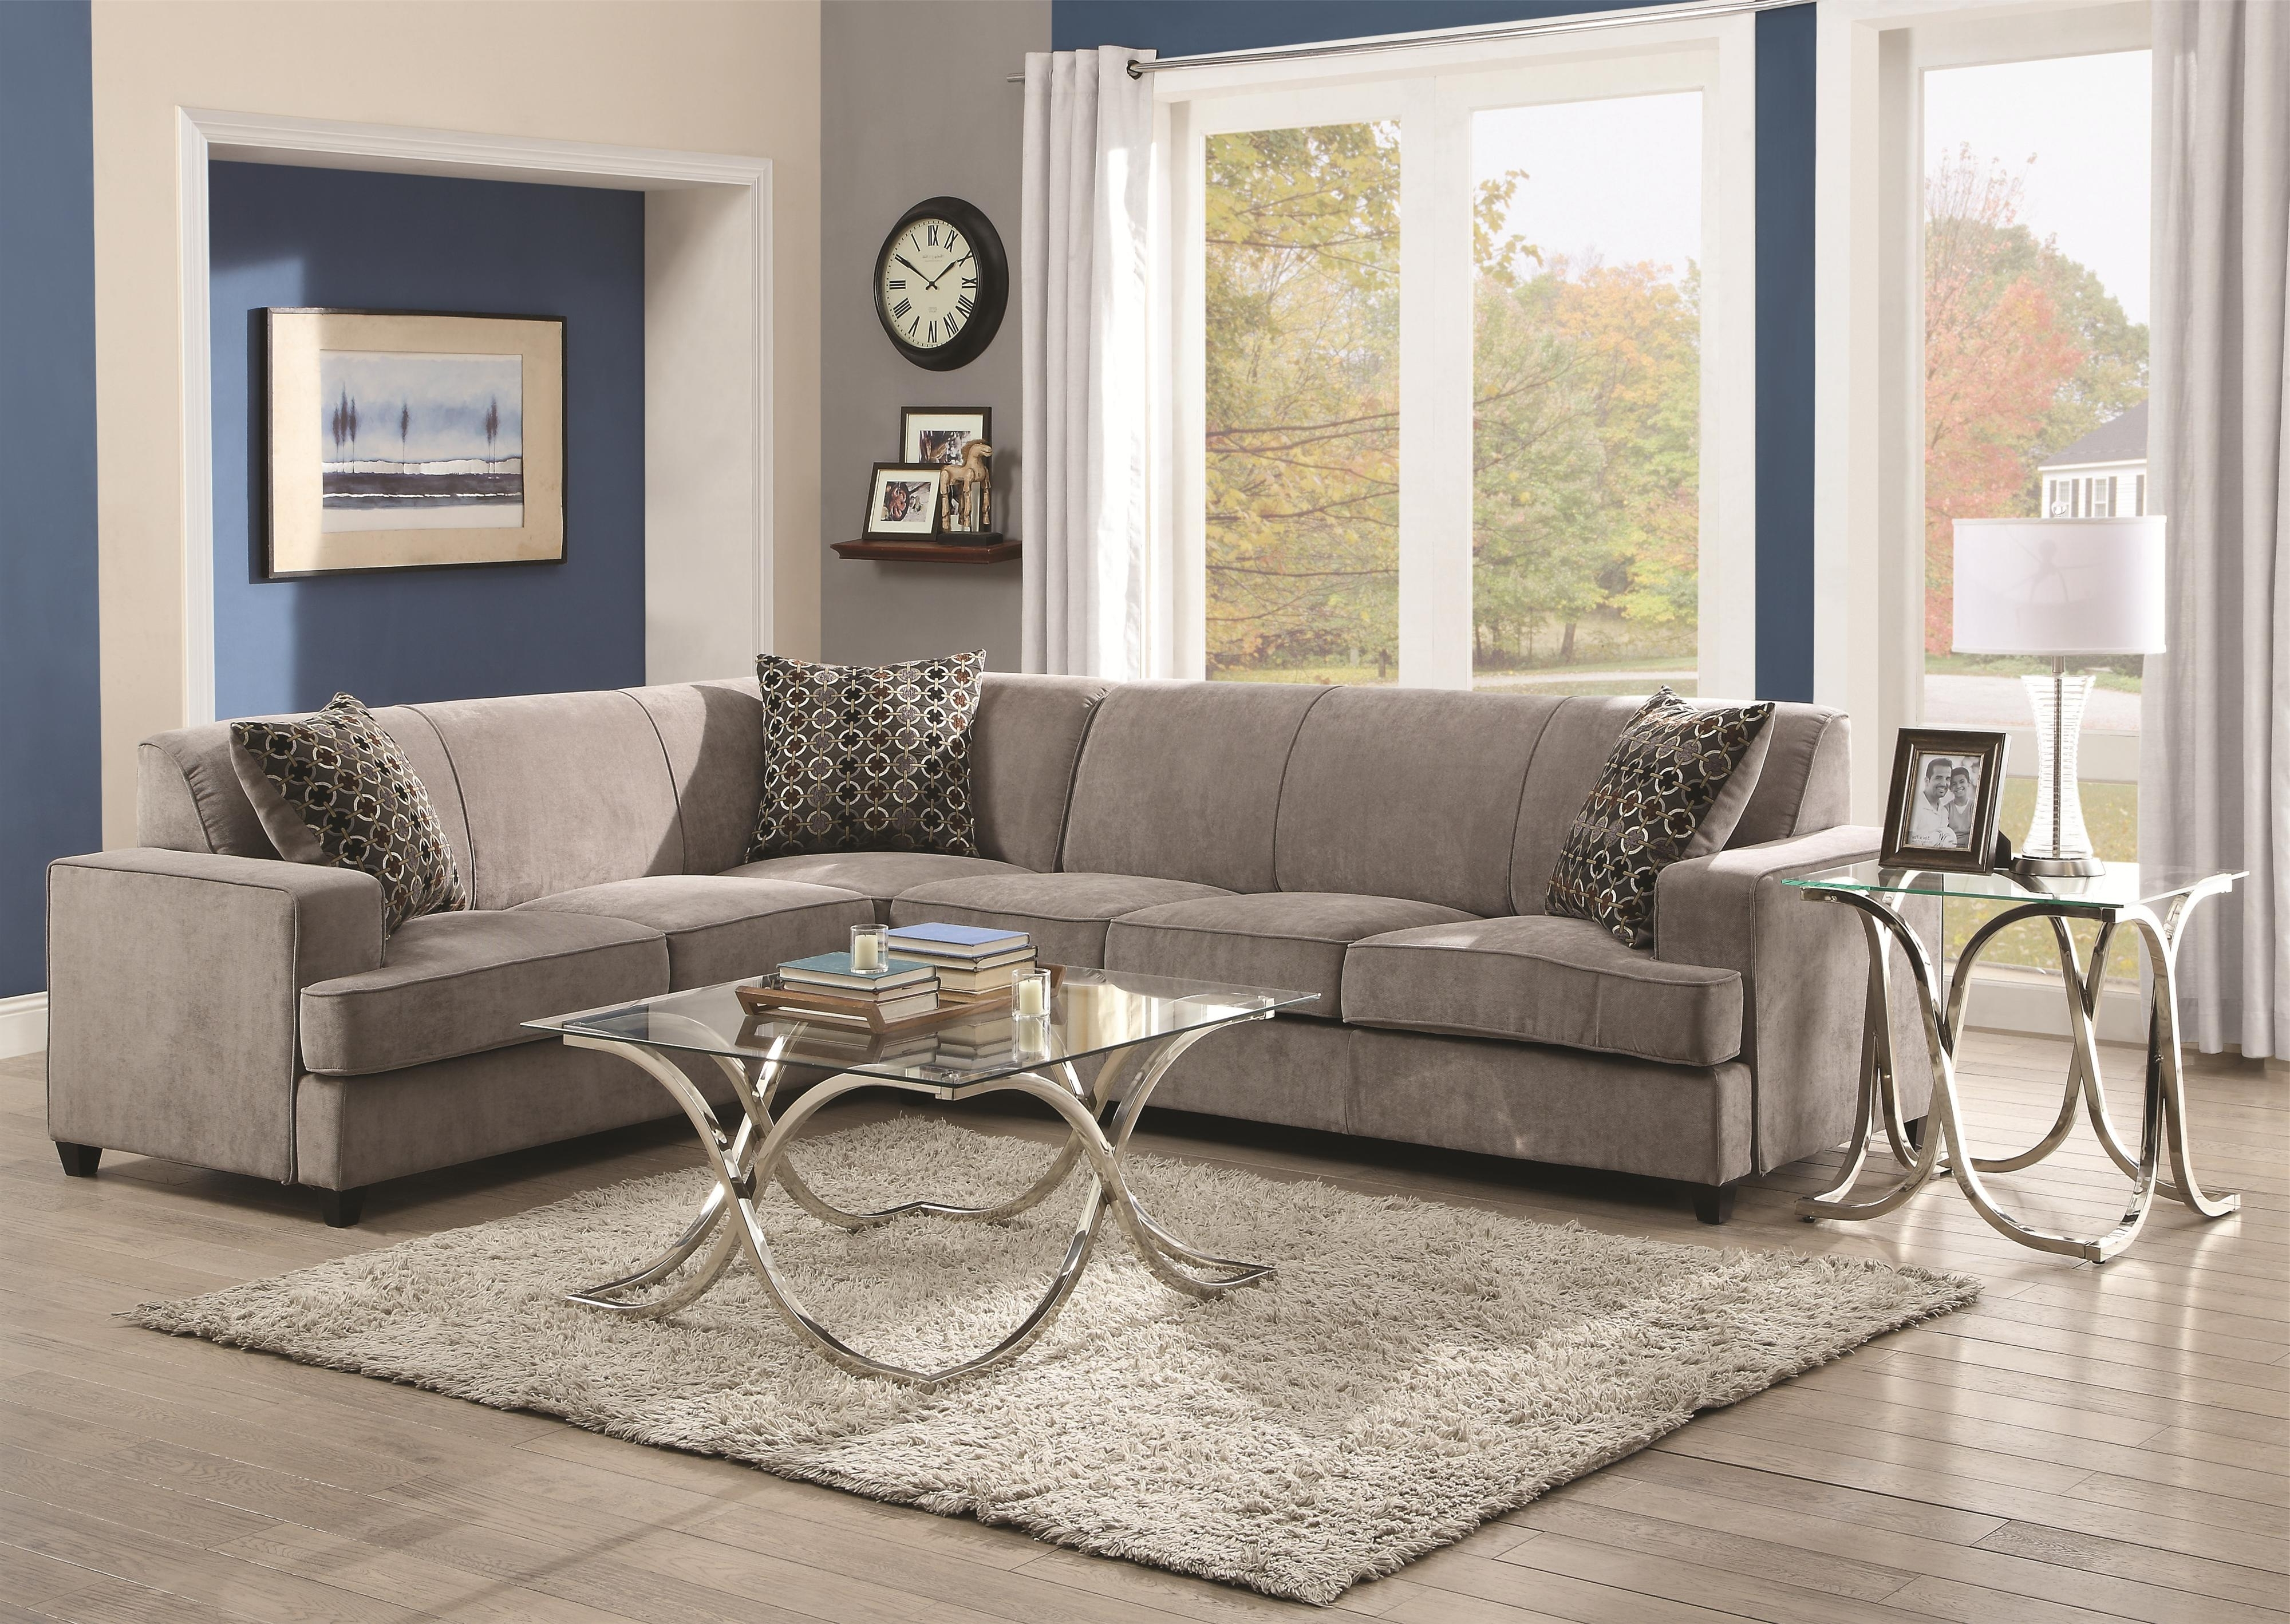 Coastal Sectional Sofa – Home Design Ideas And Pictures Within 2019 Quatrine Sectional Sofas (View 12 of 20)